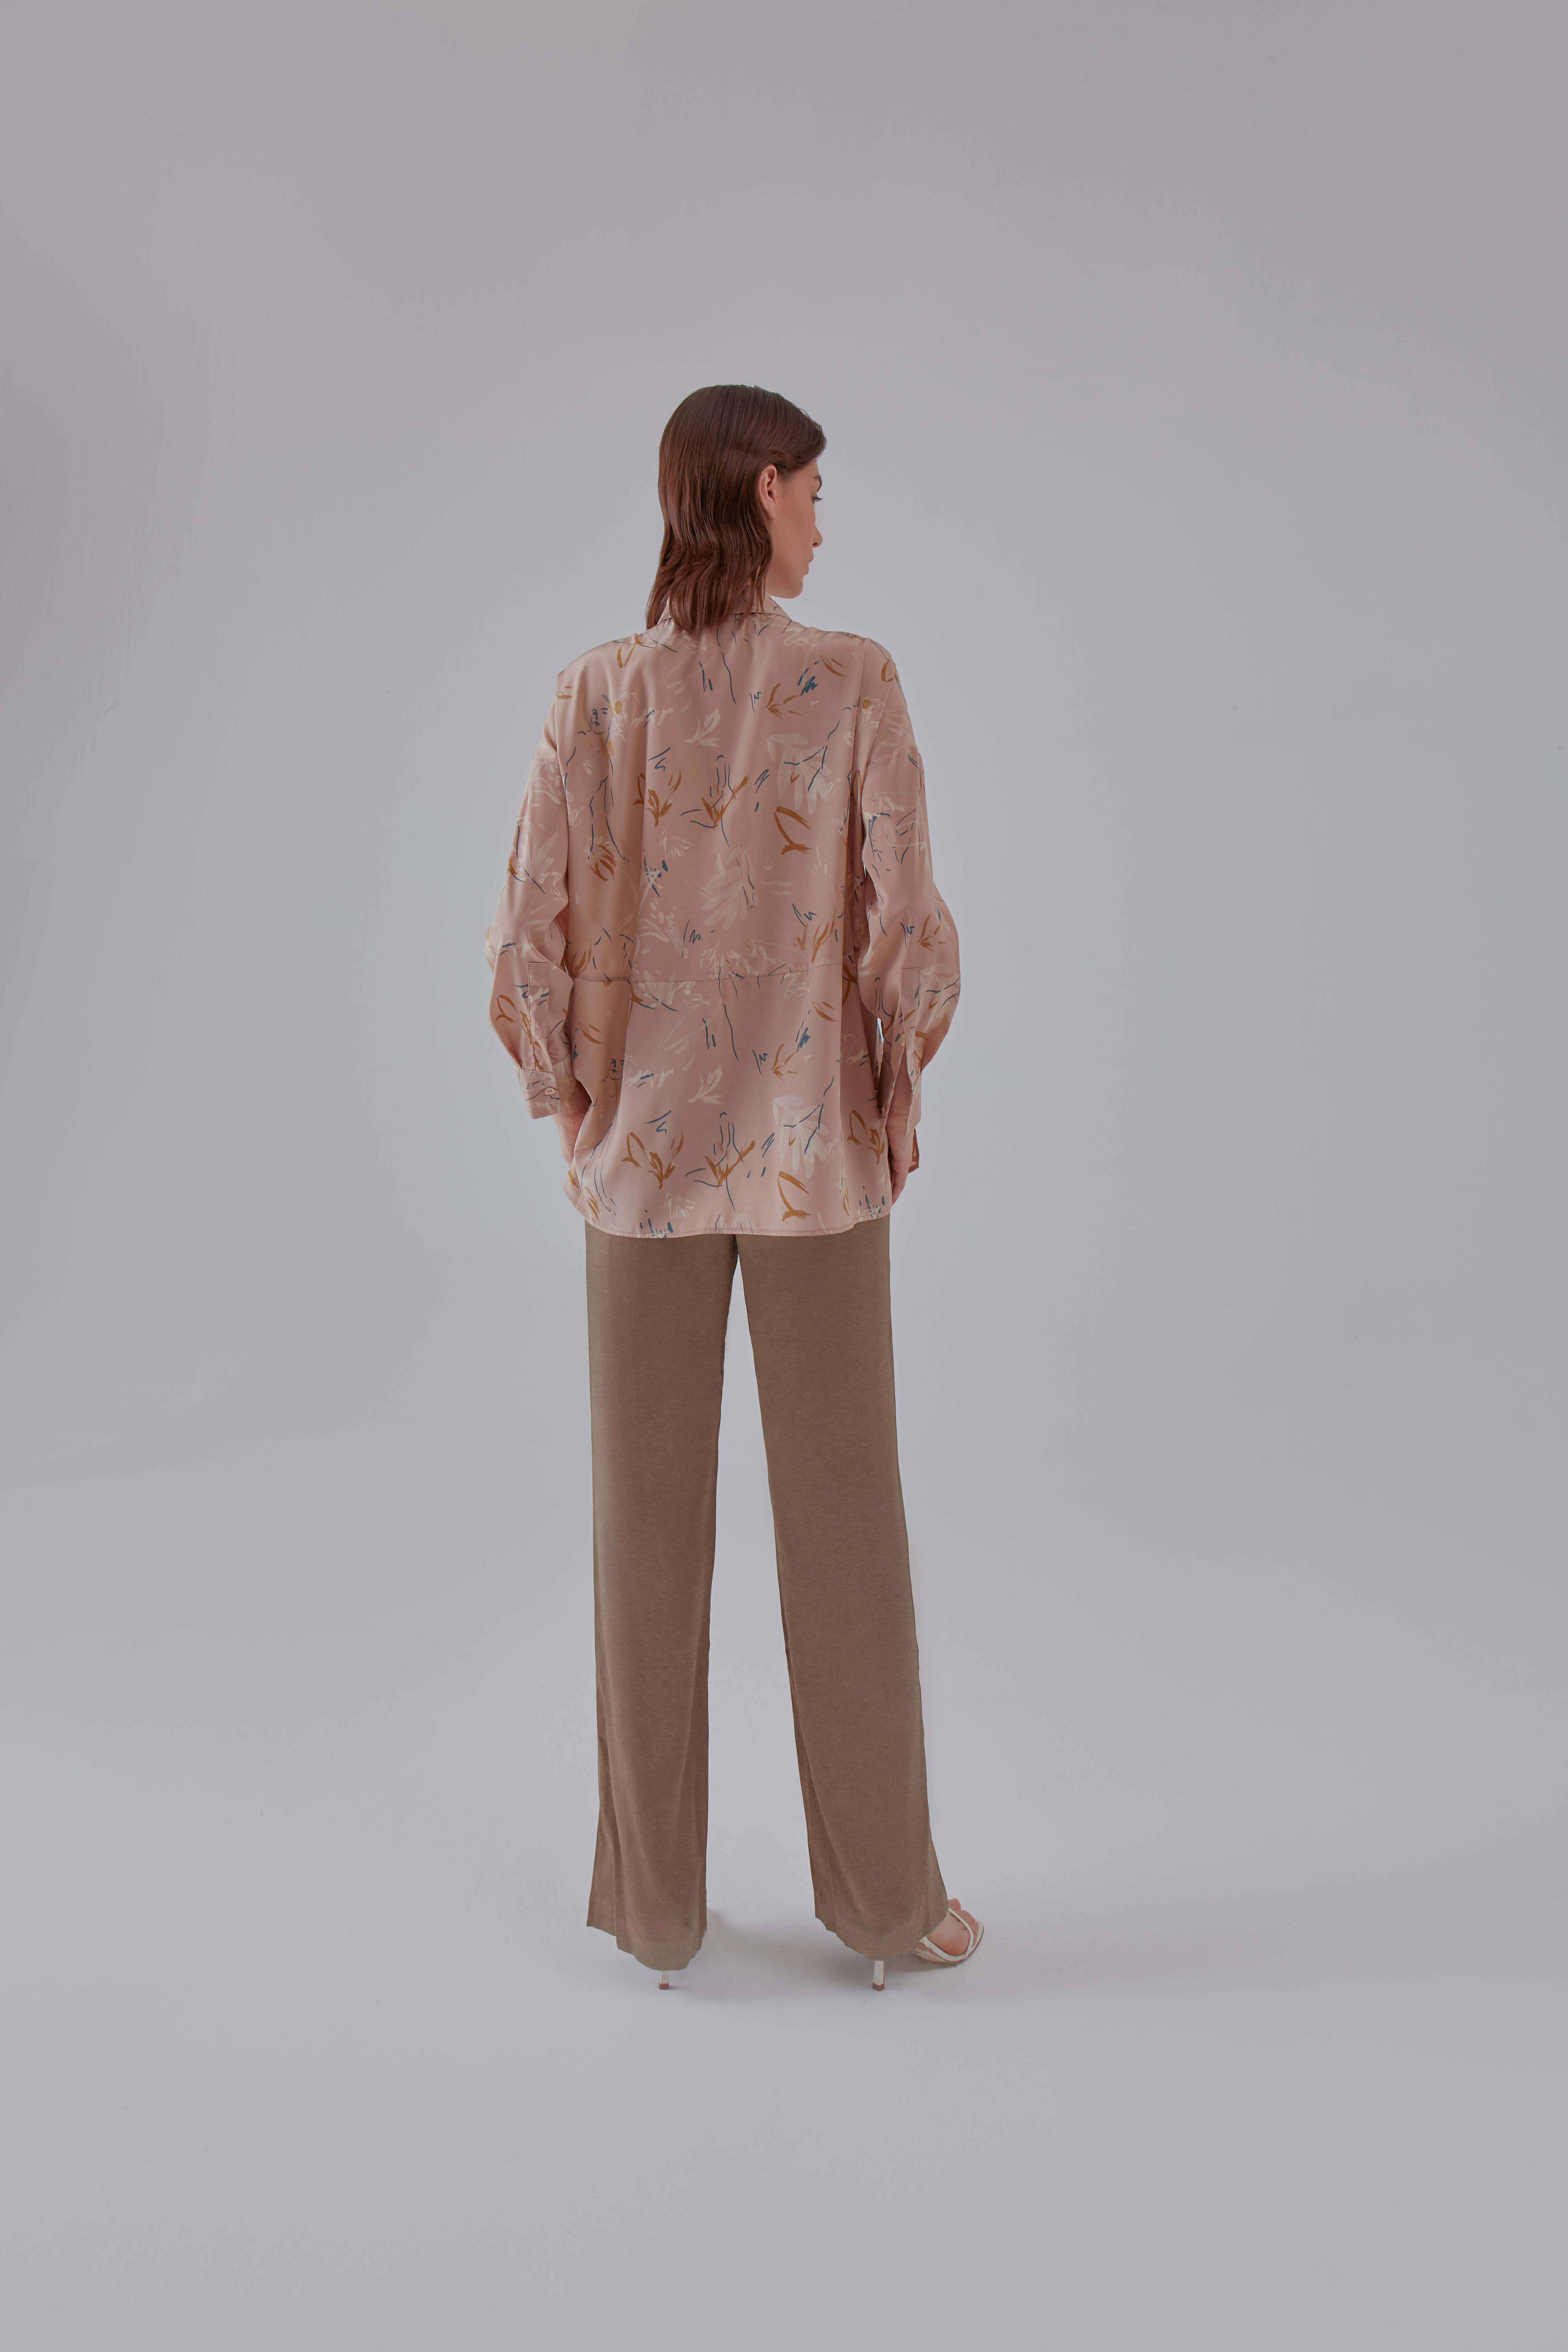 Subtle Shirt - Nude by Laika on curated-crowd.com